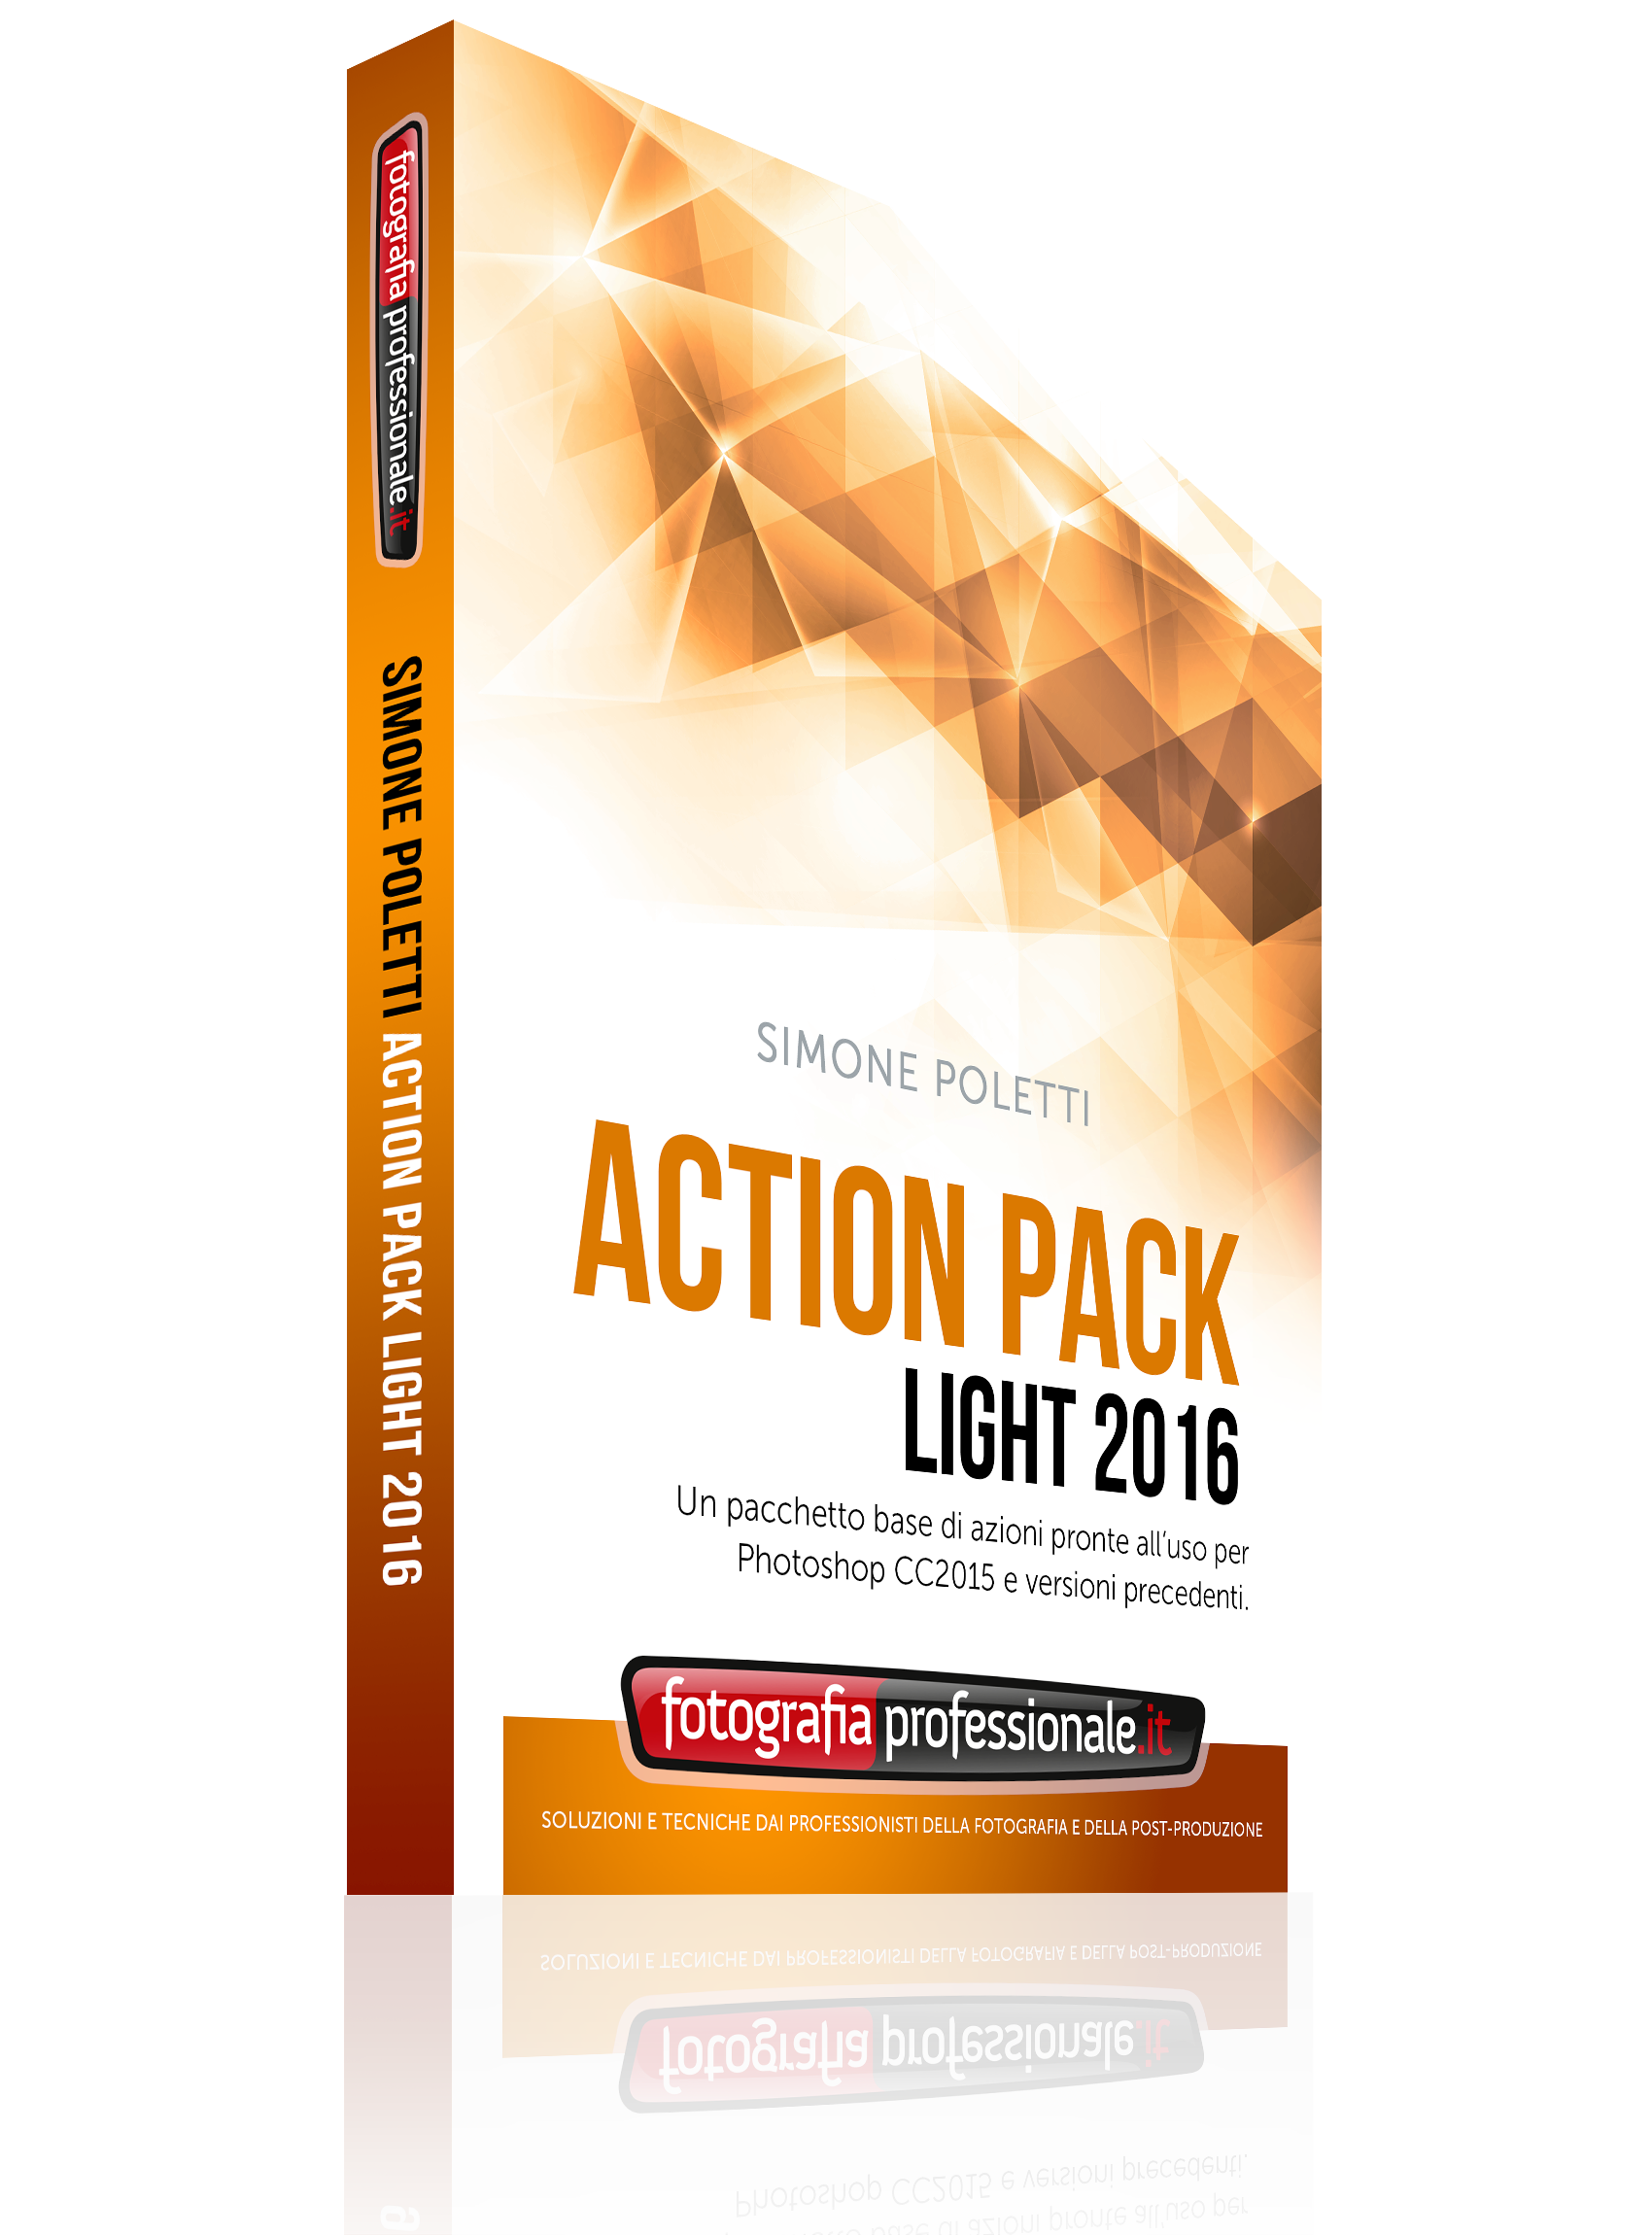 Action Pack Light 2016